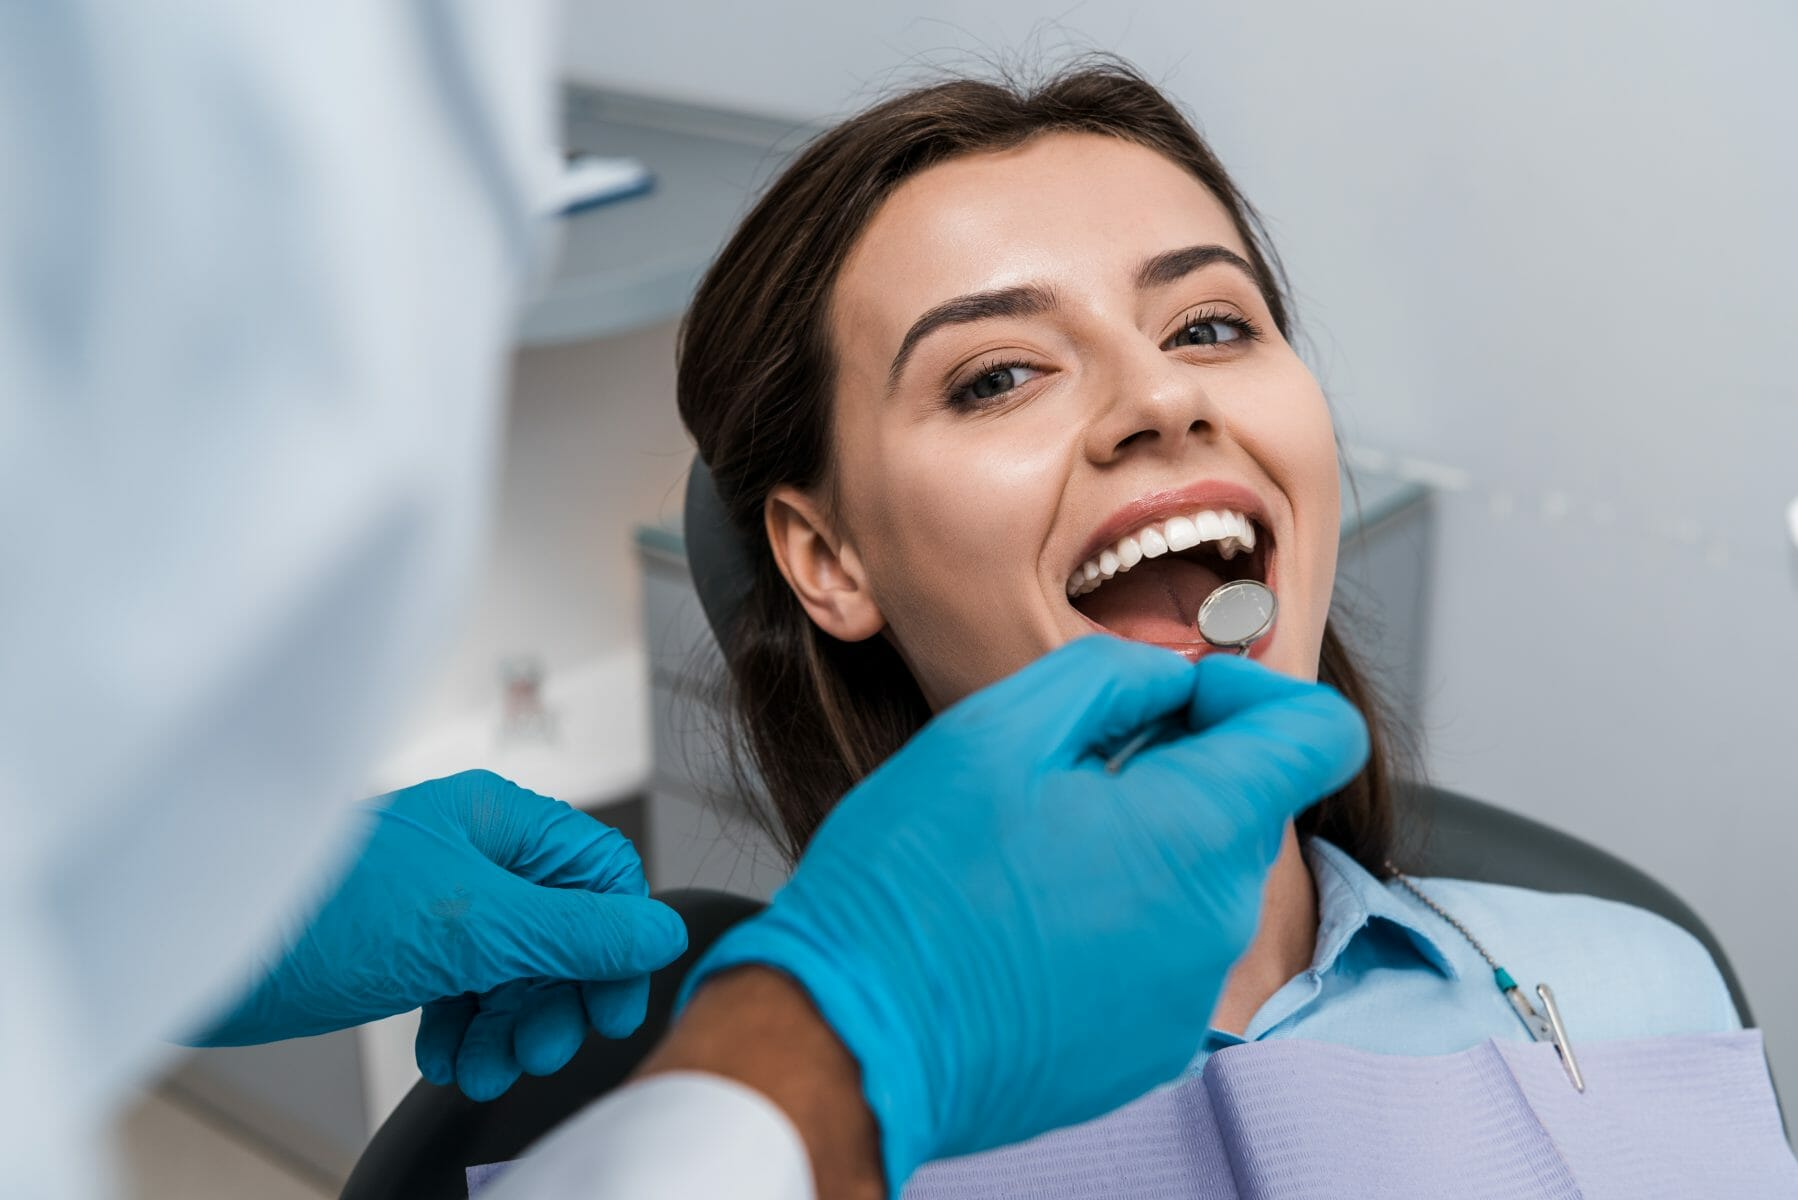 Dentist using mirror to see in patient mouth